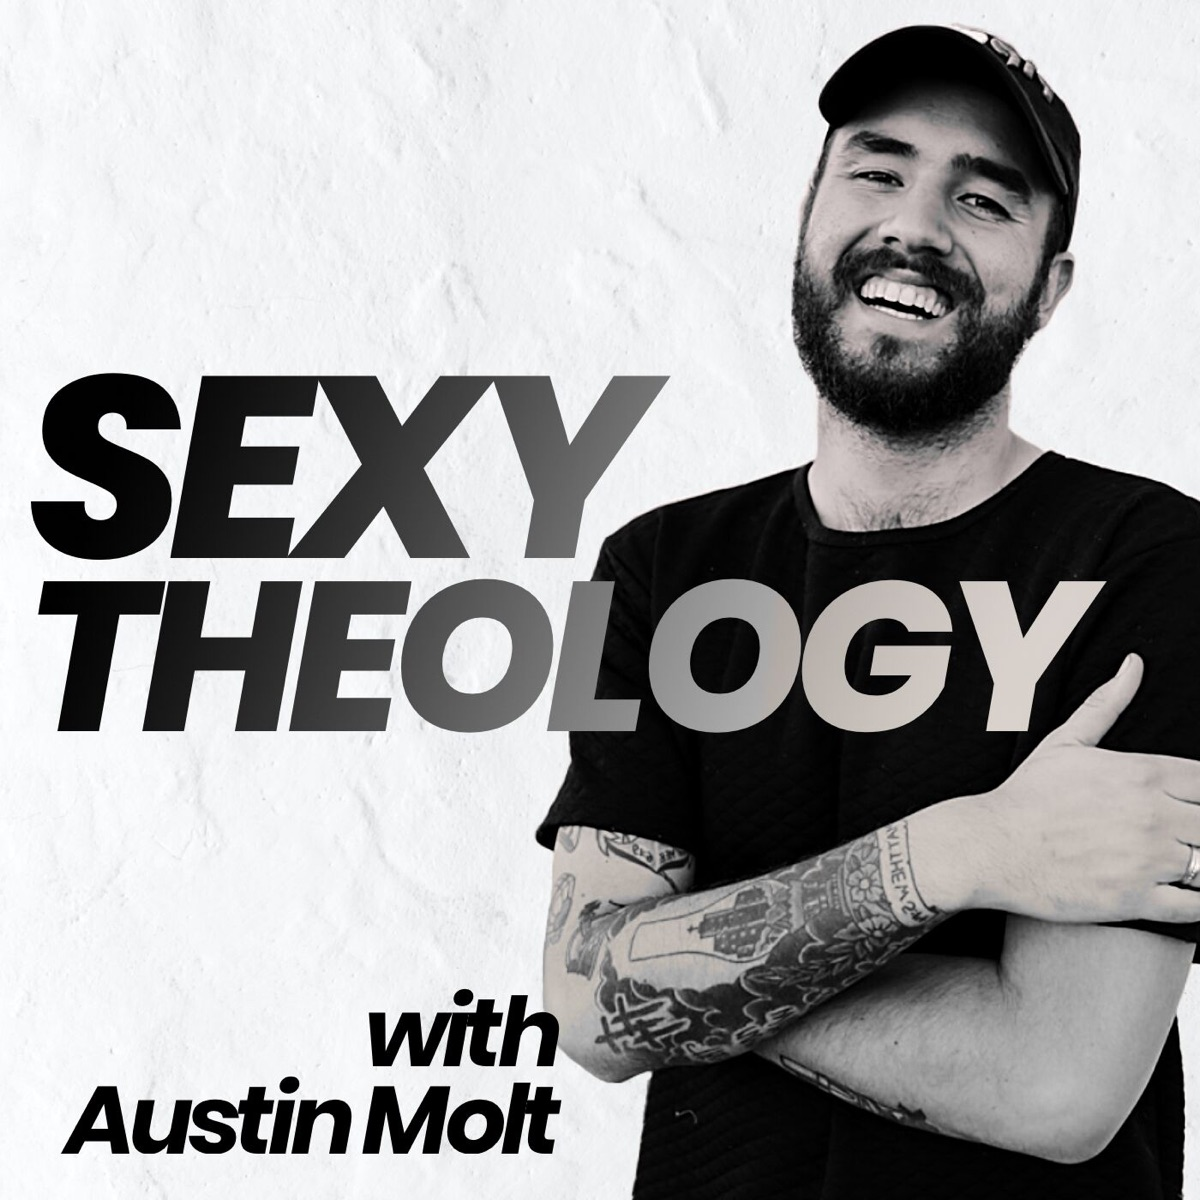 Sexy Theology